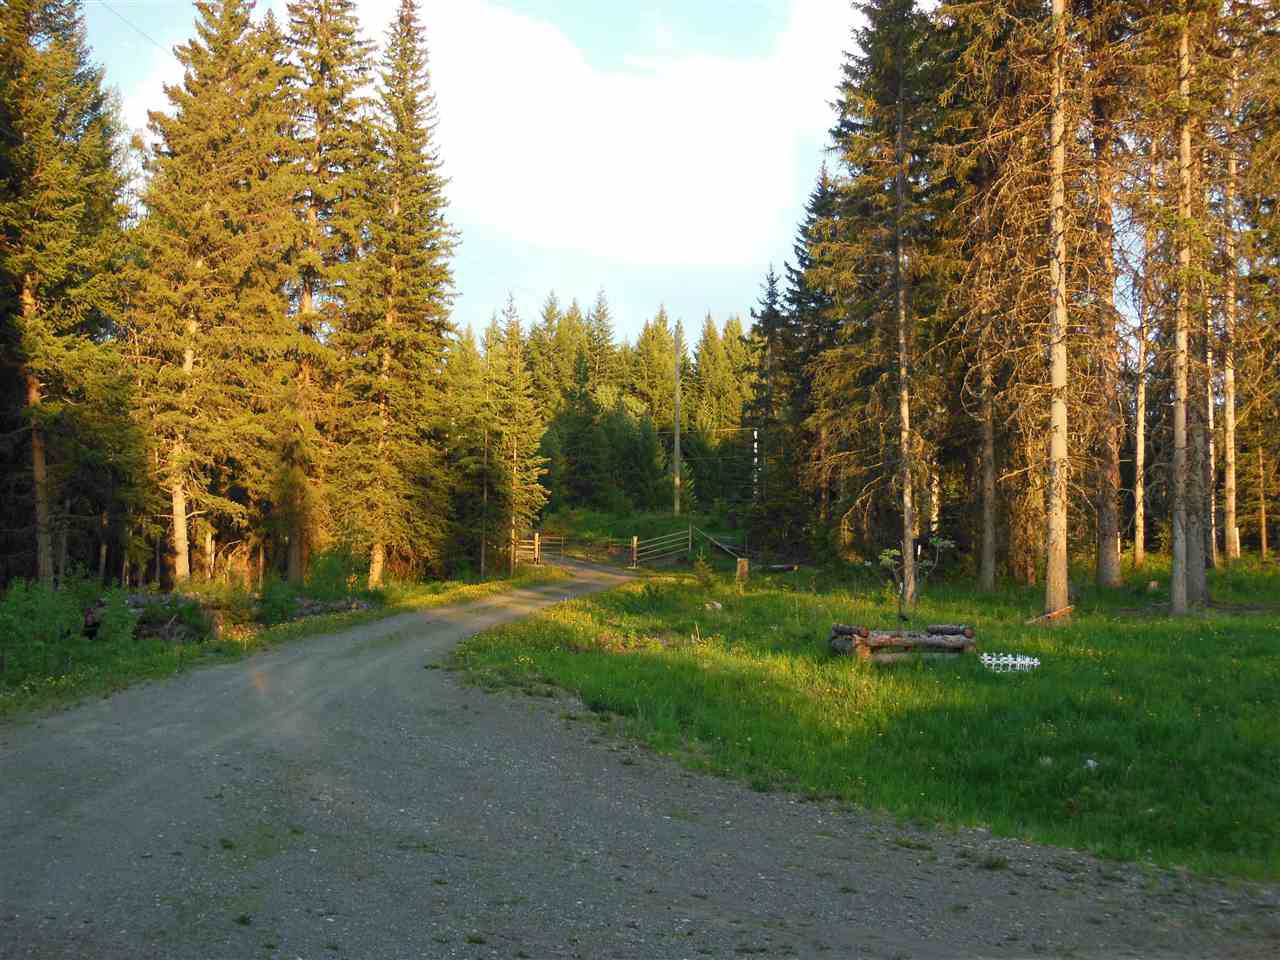 Photo 32: Photos: 3535 WESTWICK PIT Road: 150 Mile House House for sale (Williams Lake (Zone 27))  : MLS®# R2488772